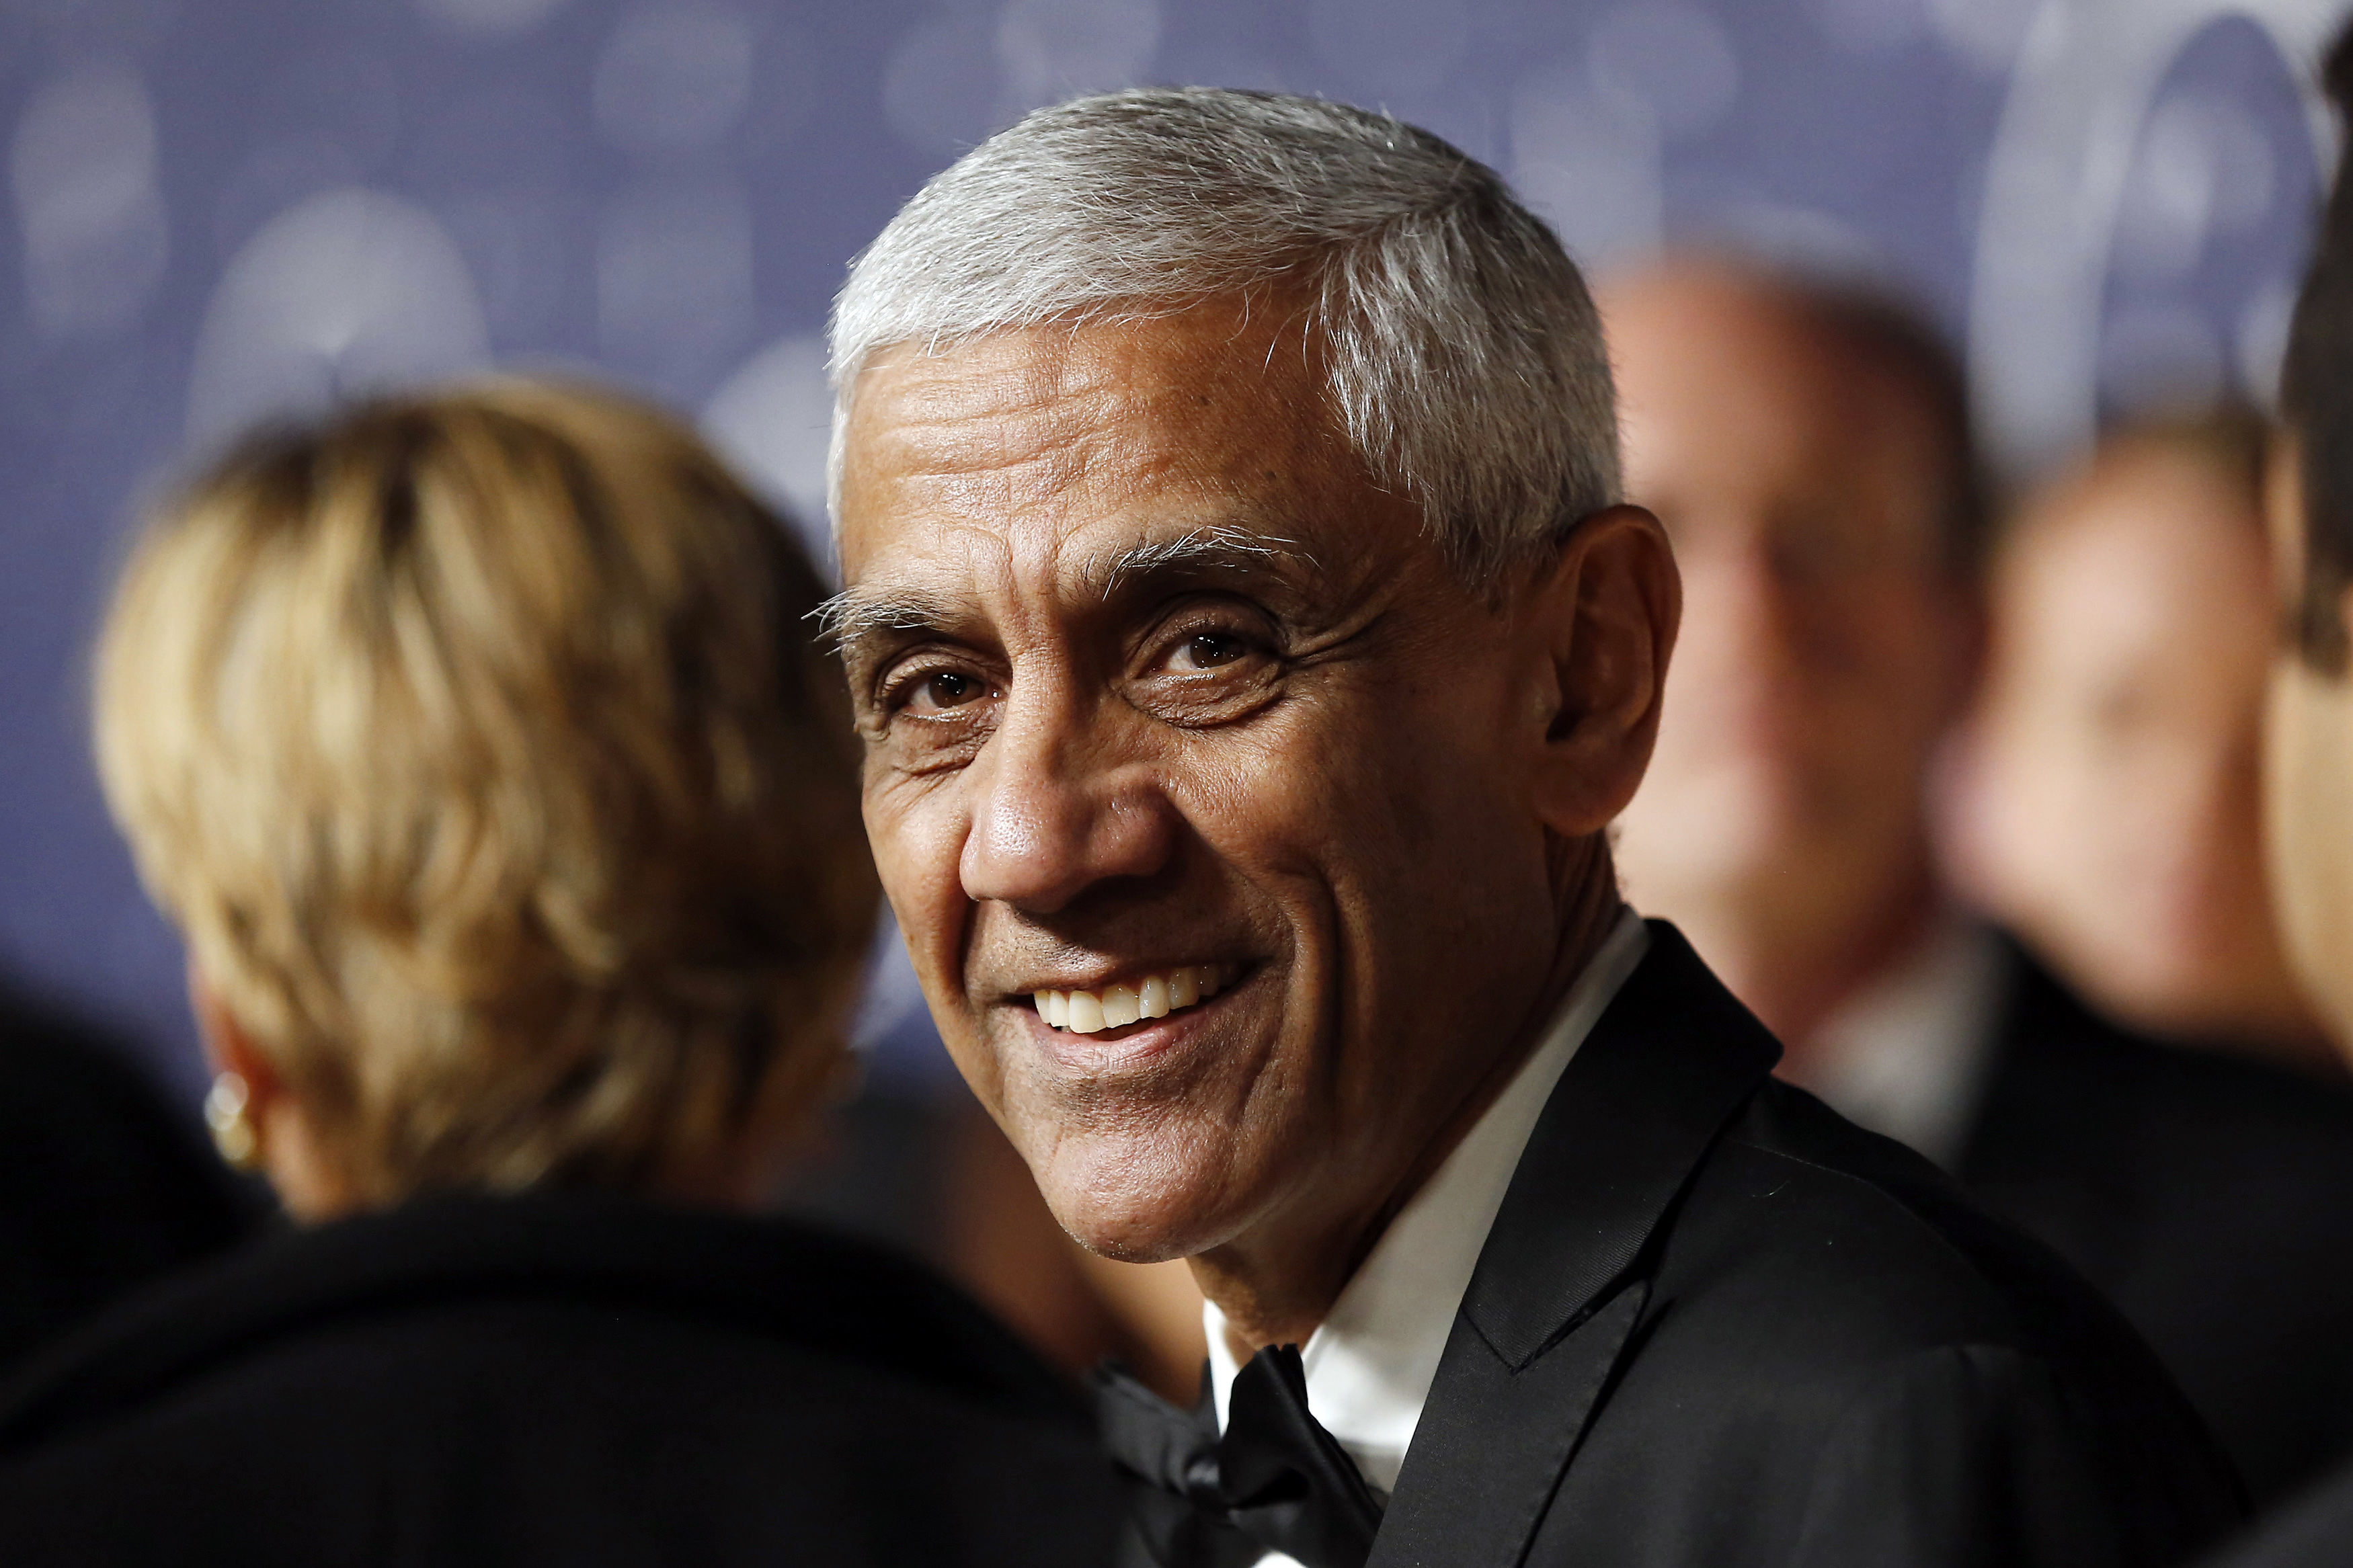 Vinod Khosla, founder and partner of Khosla Ventures, arrives on the red carpet during the second annual Breakthrough Prize Awards at the NASA Ames Research Center in Mountain View, California November 9, 2014. REUTERS/Stephen Lam